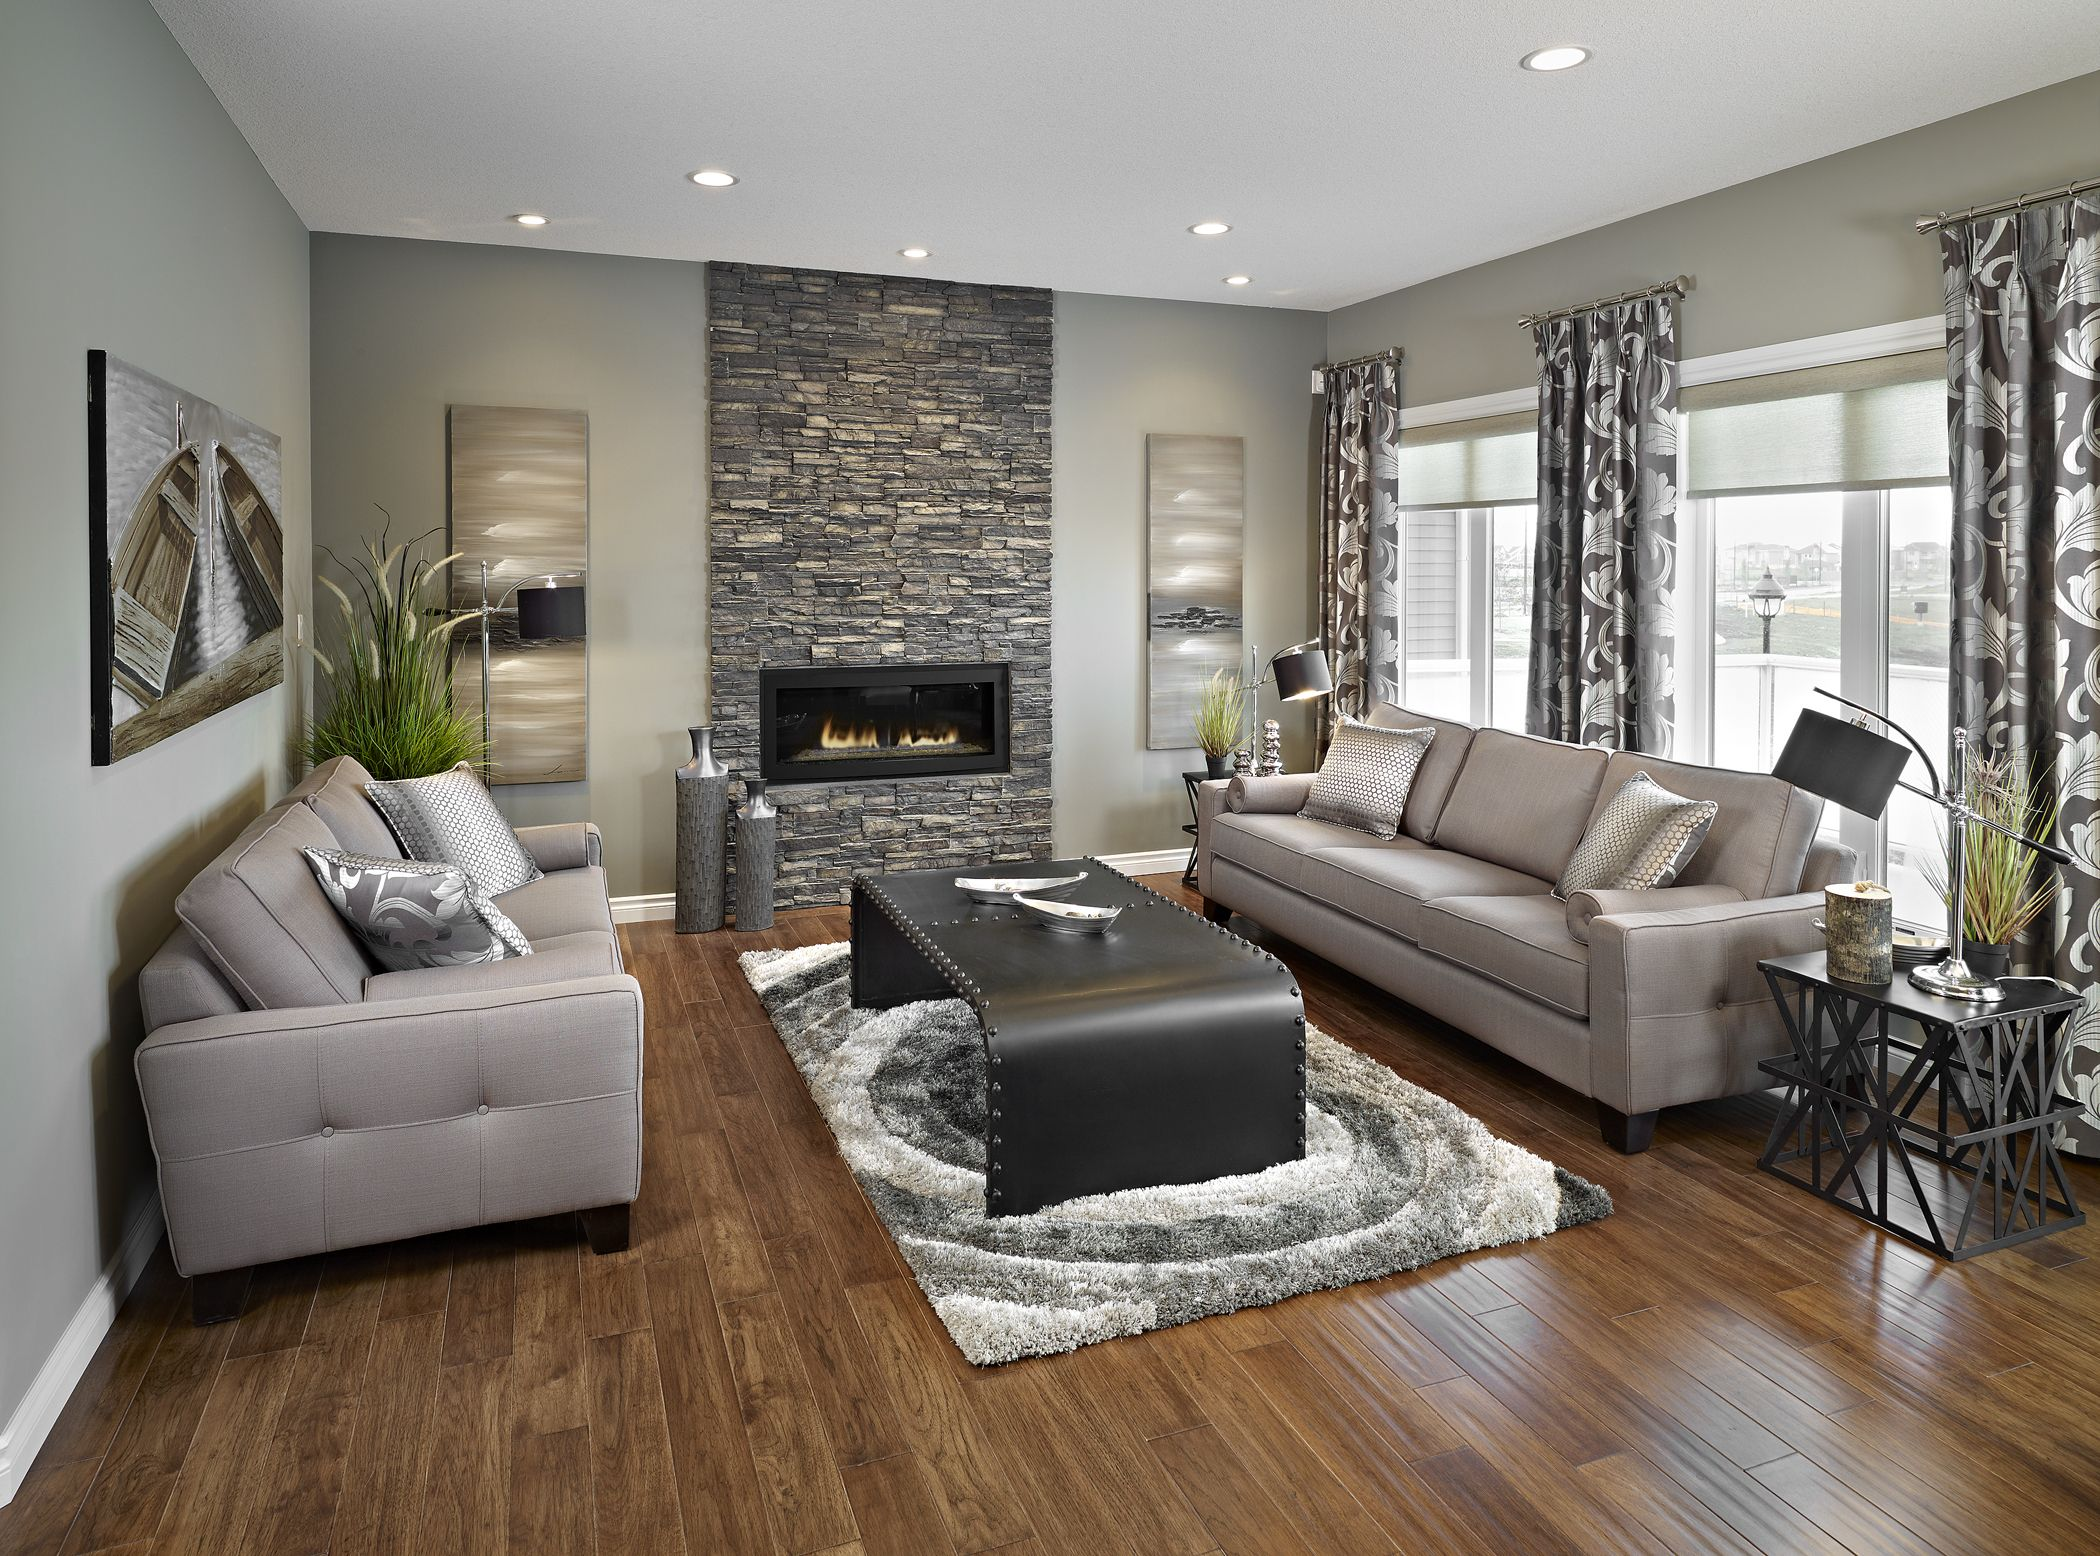 Pairing the linear fireplace with cultured stone gives traditional